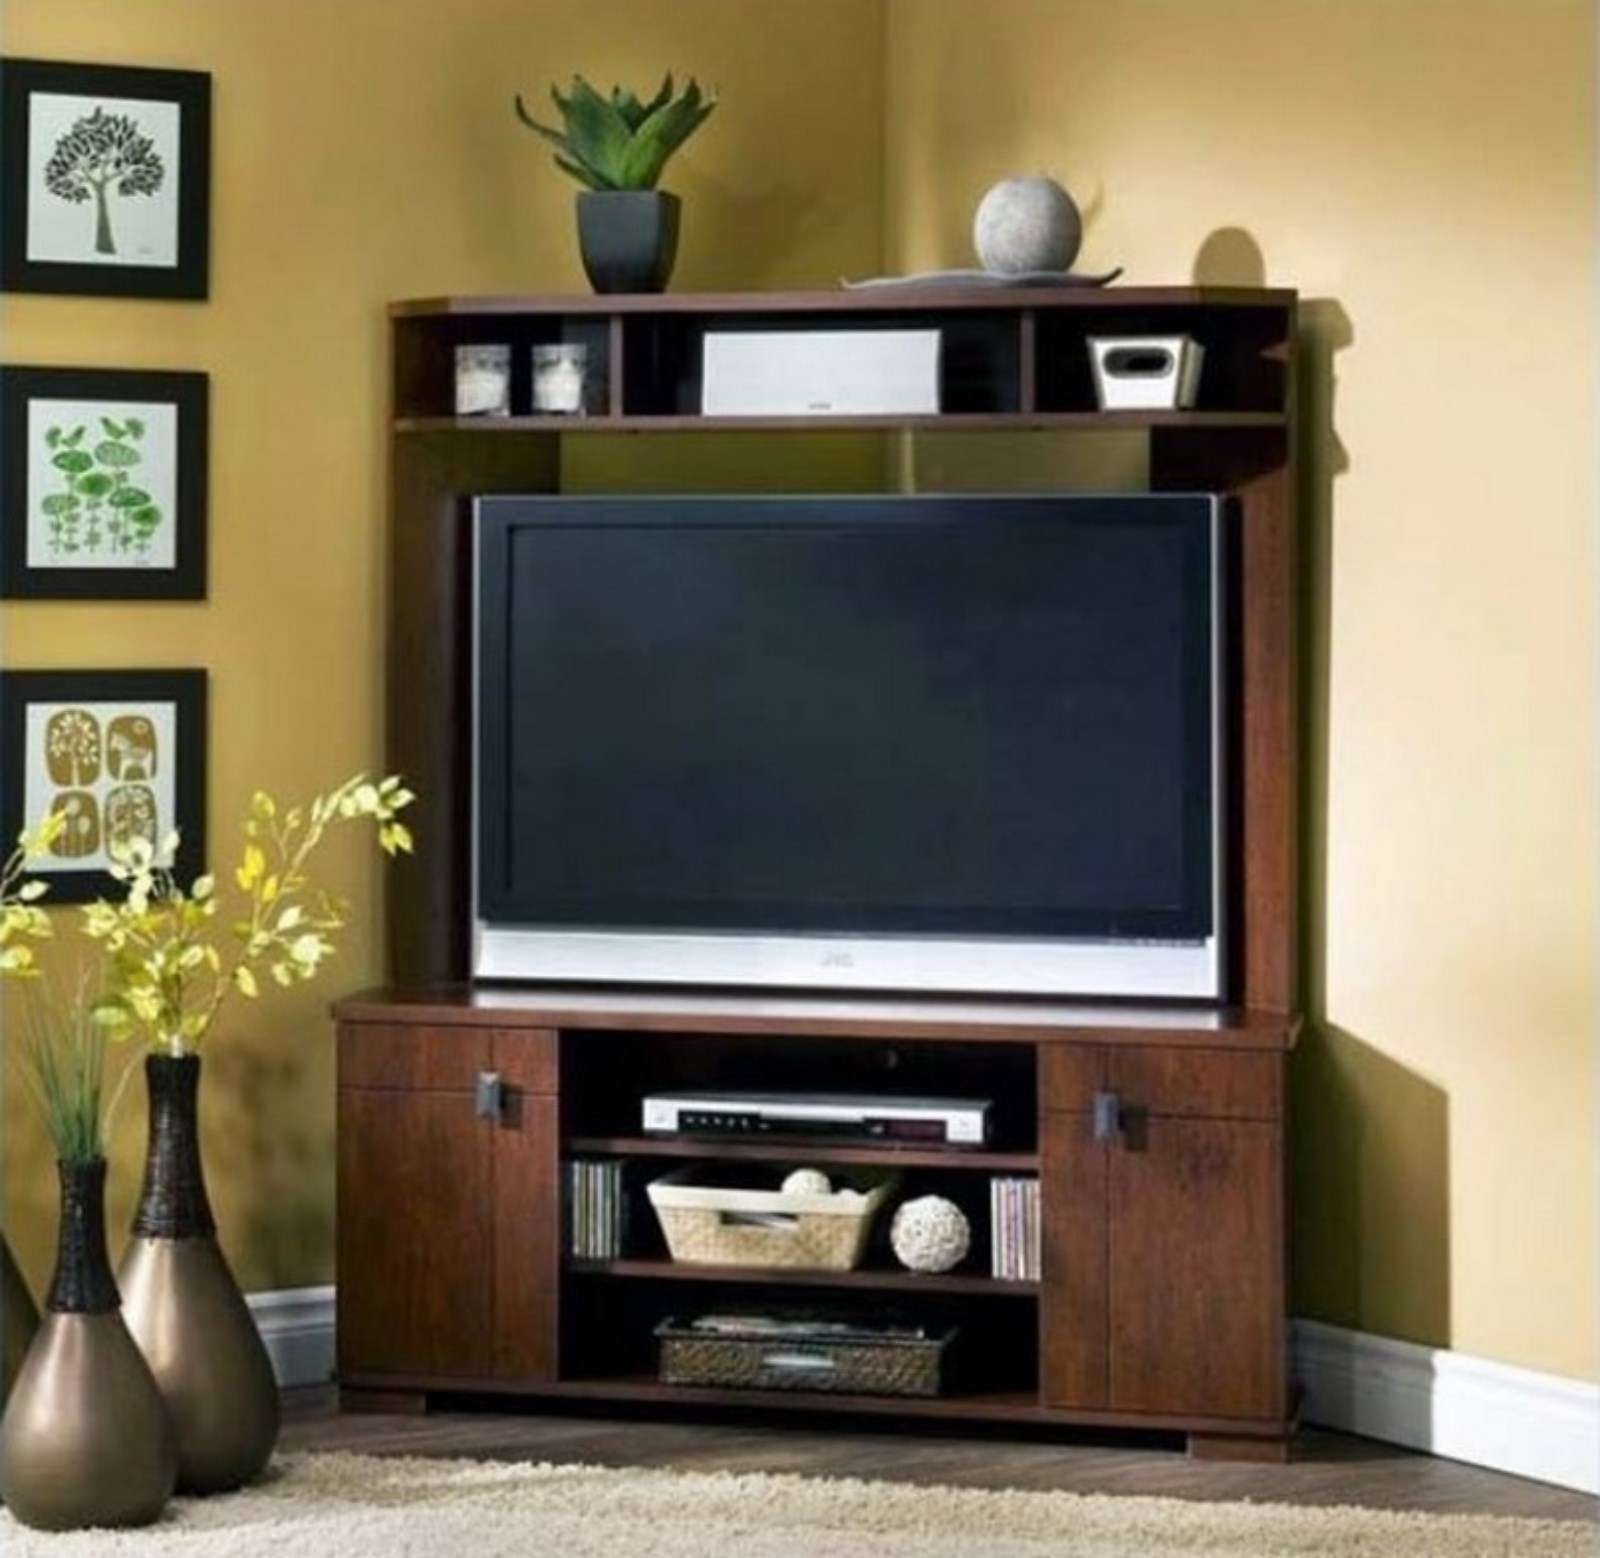 Tv Stand : Inch Corner Tv Stand With Mount Stands Inspiring Inside 55 Inch Corner Tv Stands (View 8 of 20)